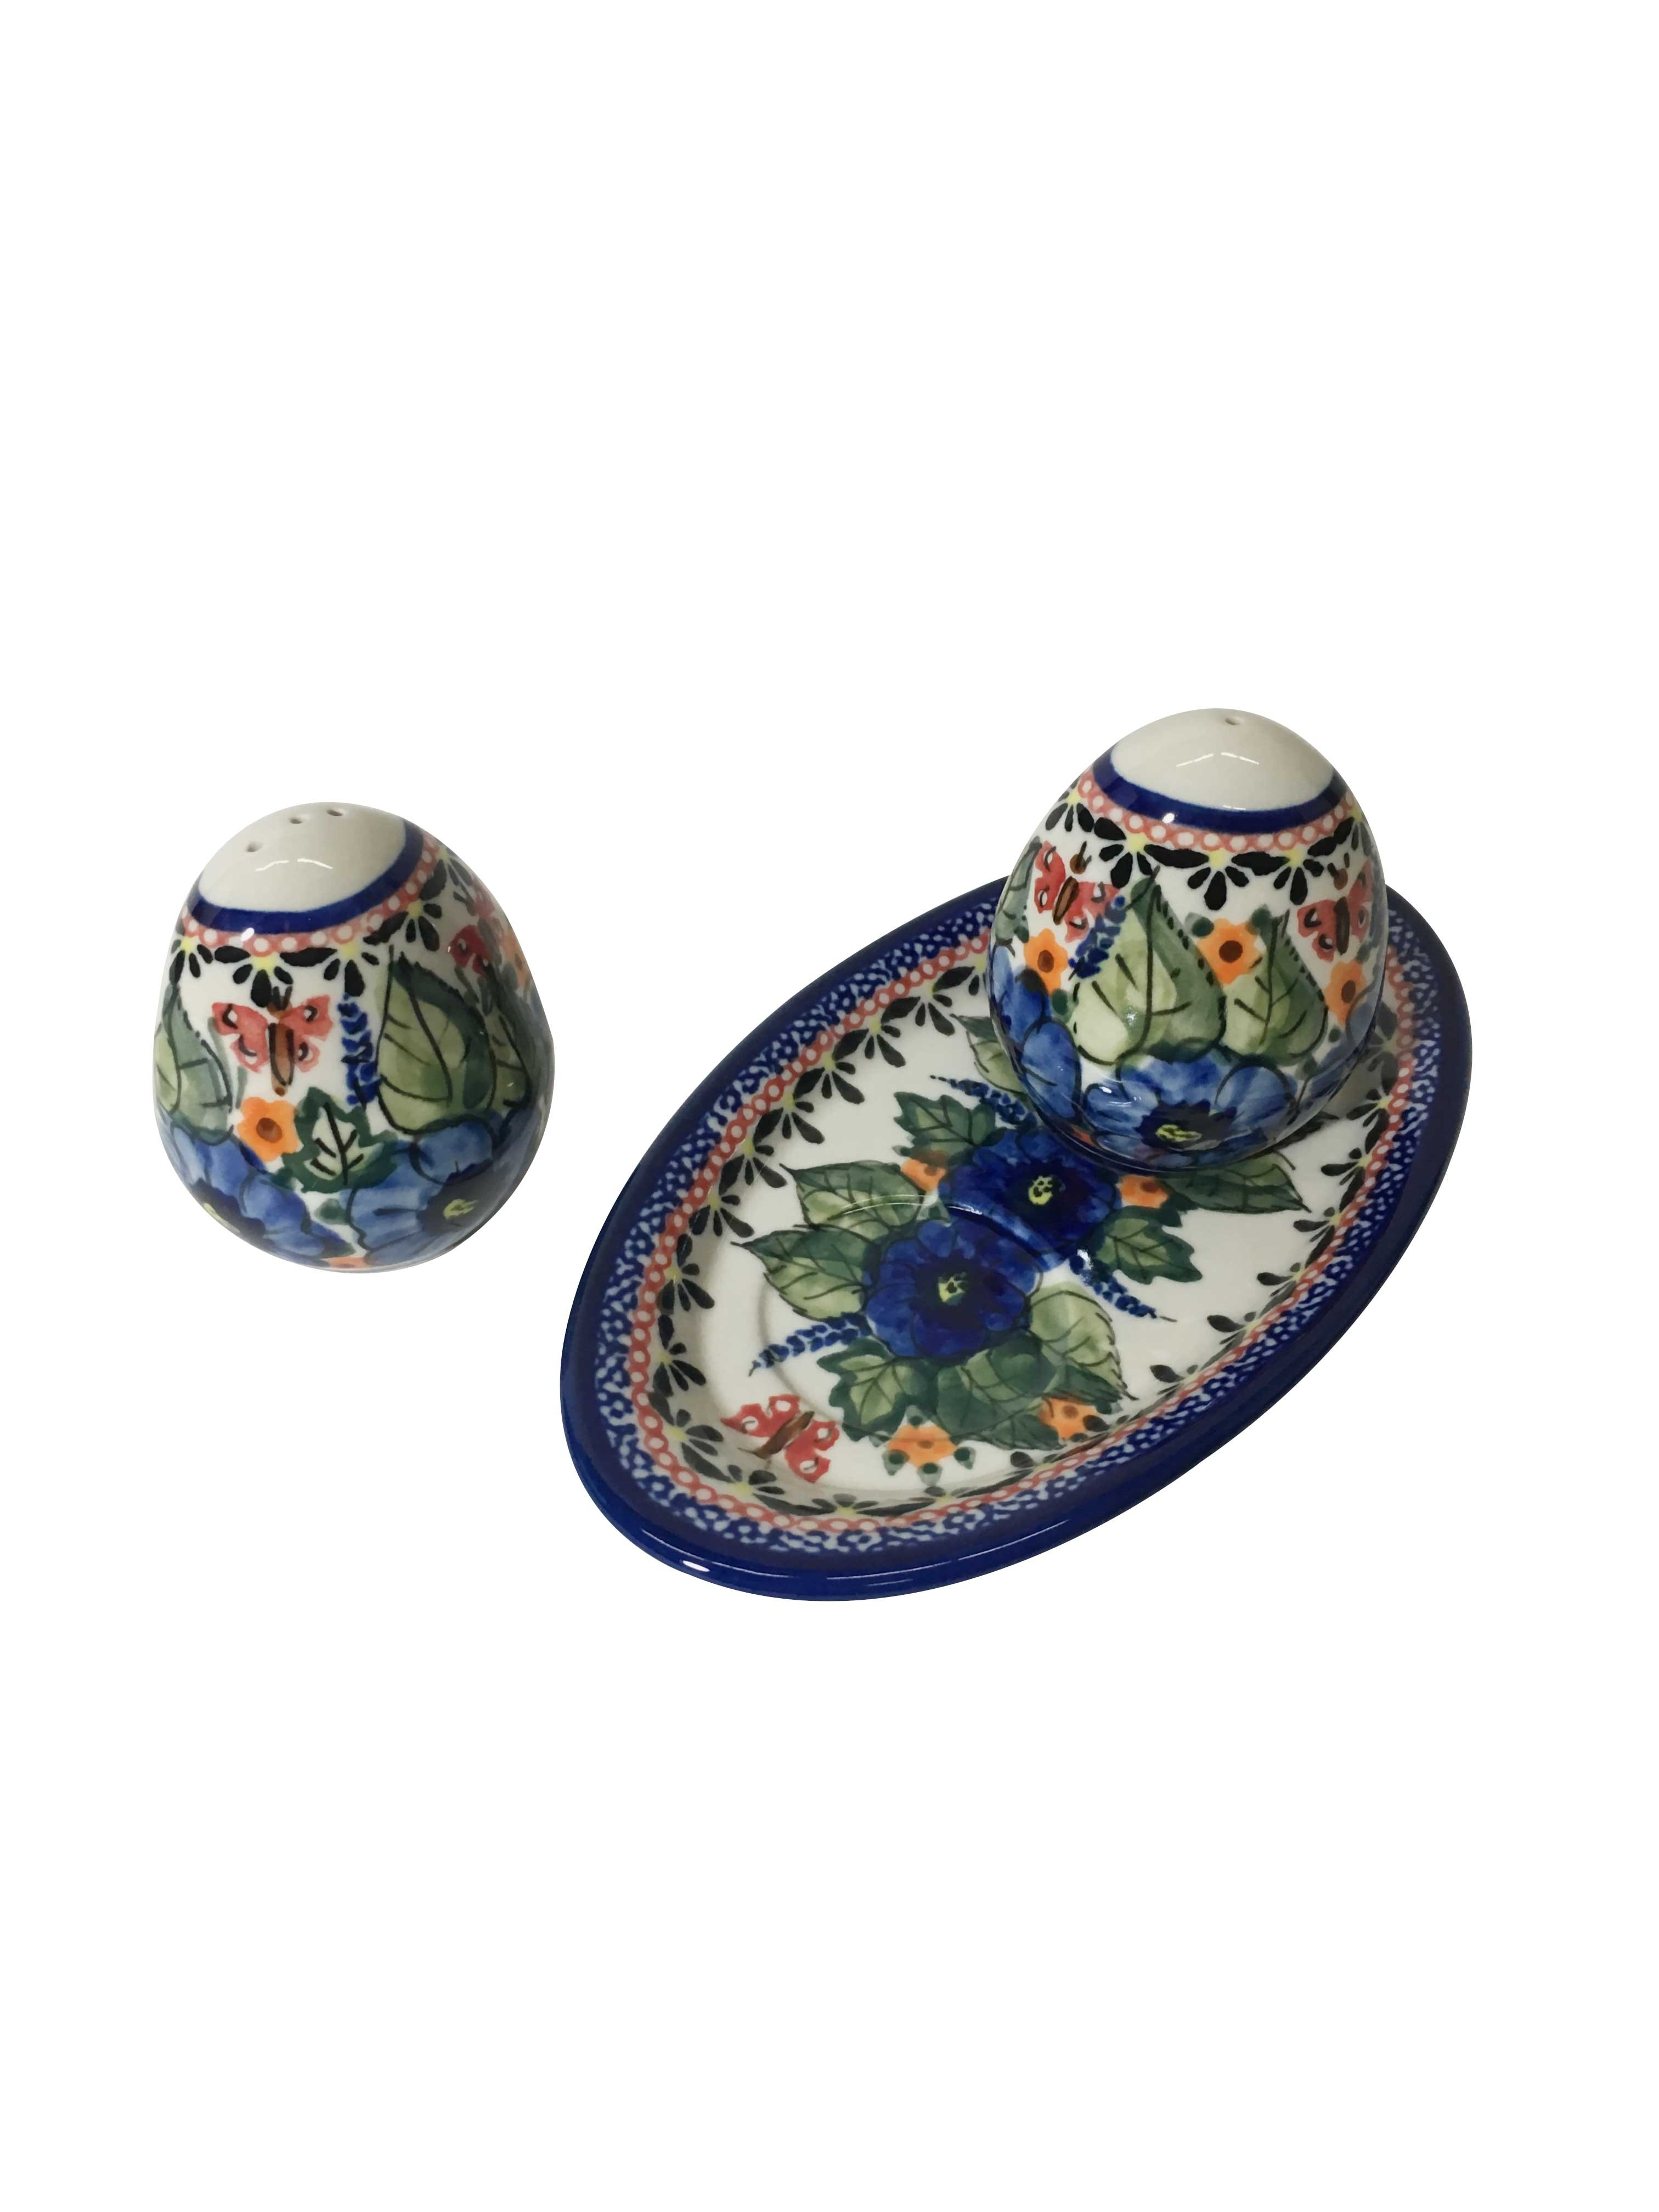 Pottery Avenue Strawberry Butterfly 3pc Stoneware Salt and Pepper Trio Set 962-961-208AR